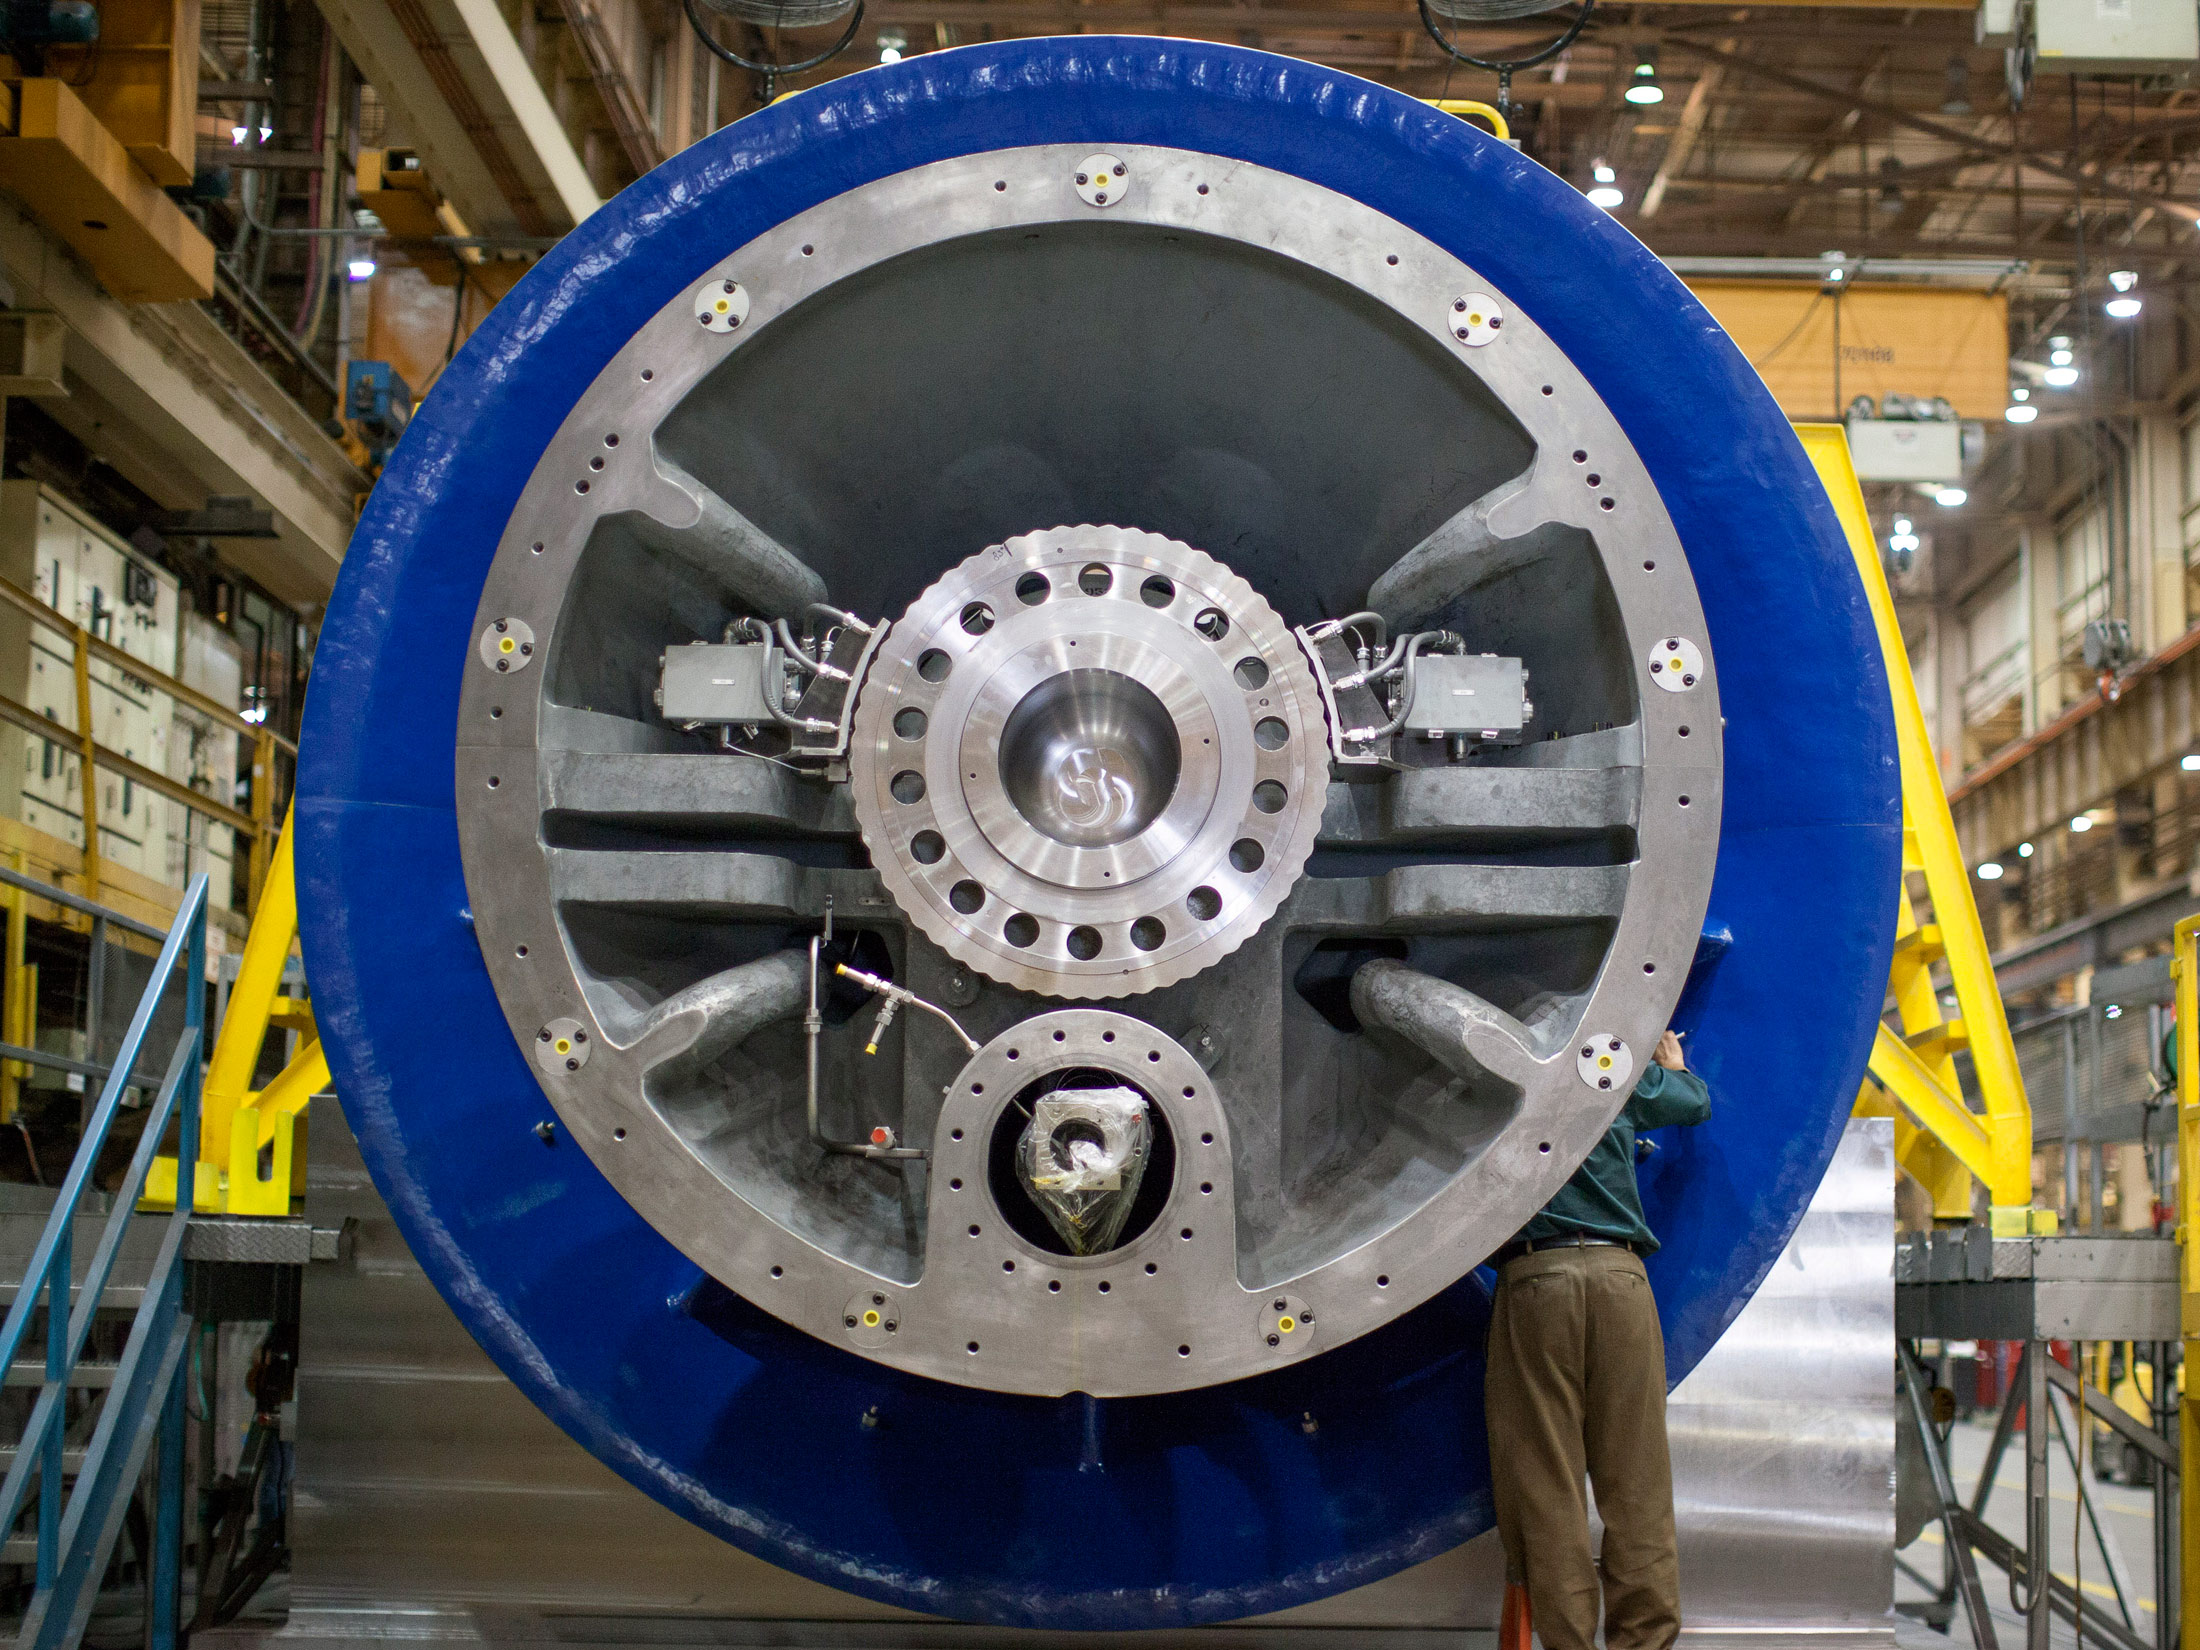 GE Makes ce a Decade Bet on Big Turbines as Energy Use Surges